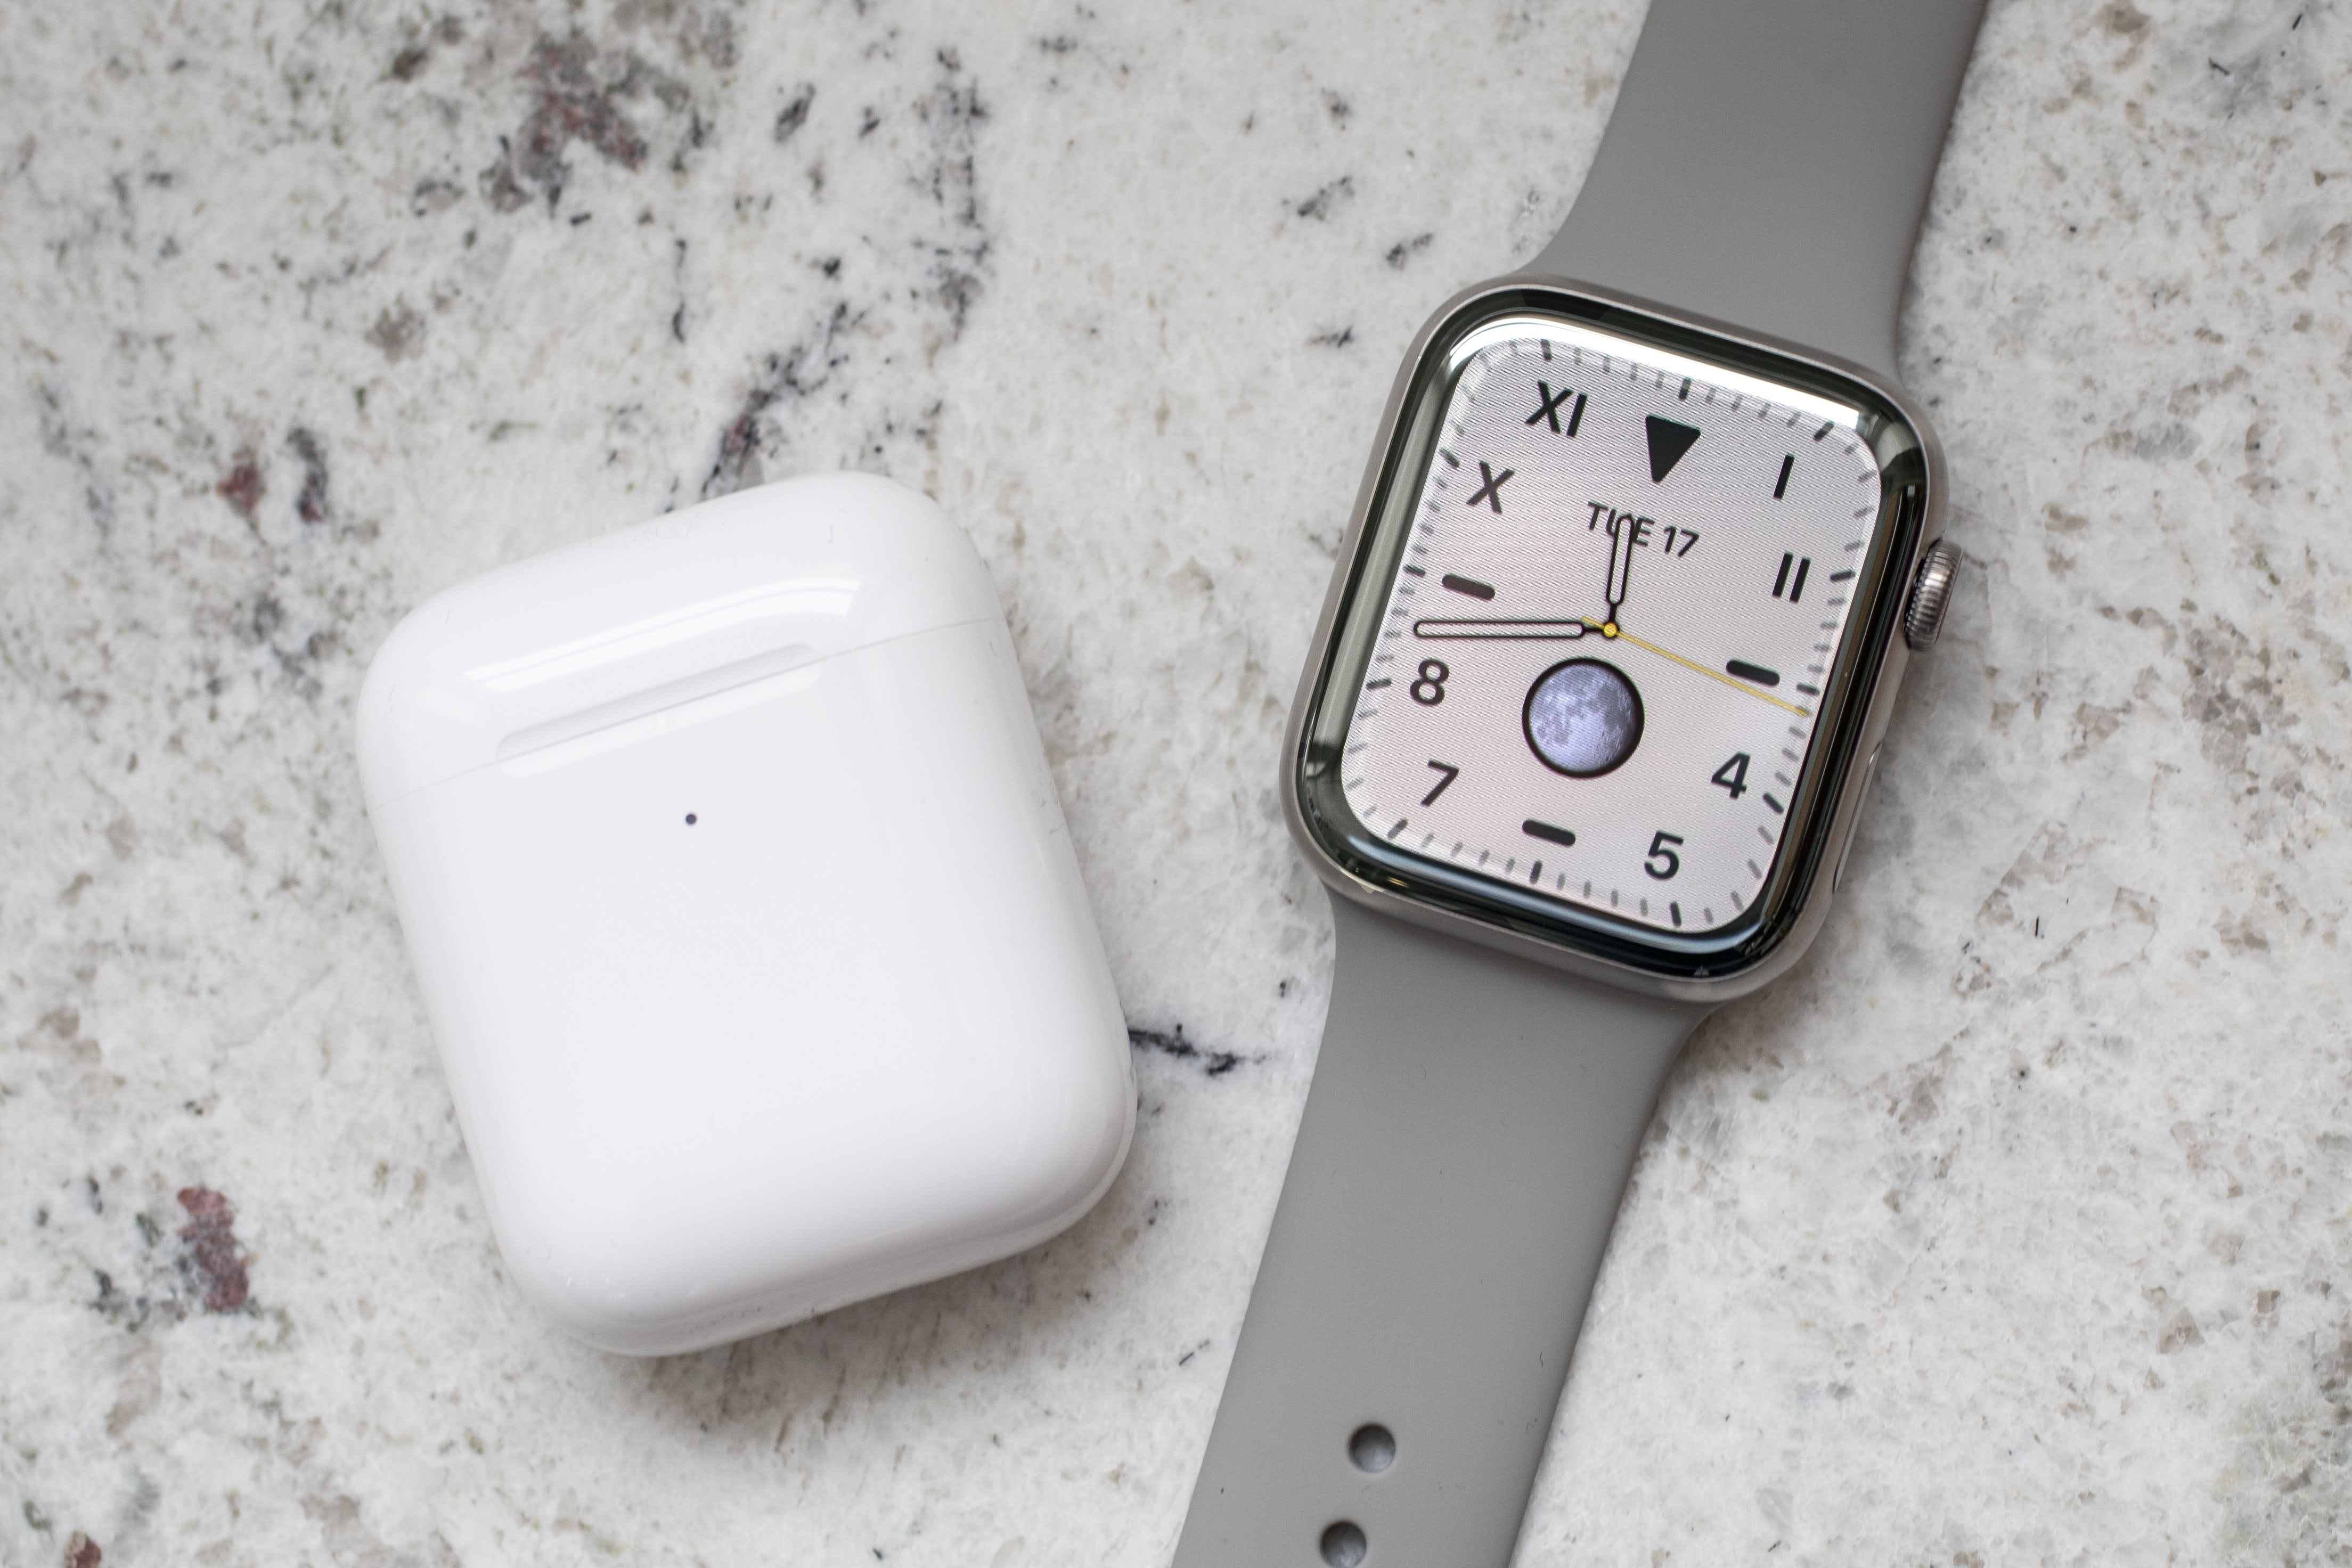 Apple Watch Series 5 AirPods 001